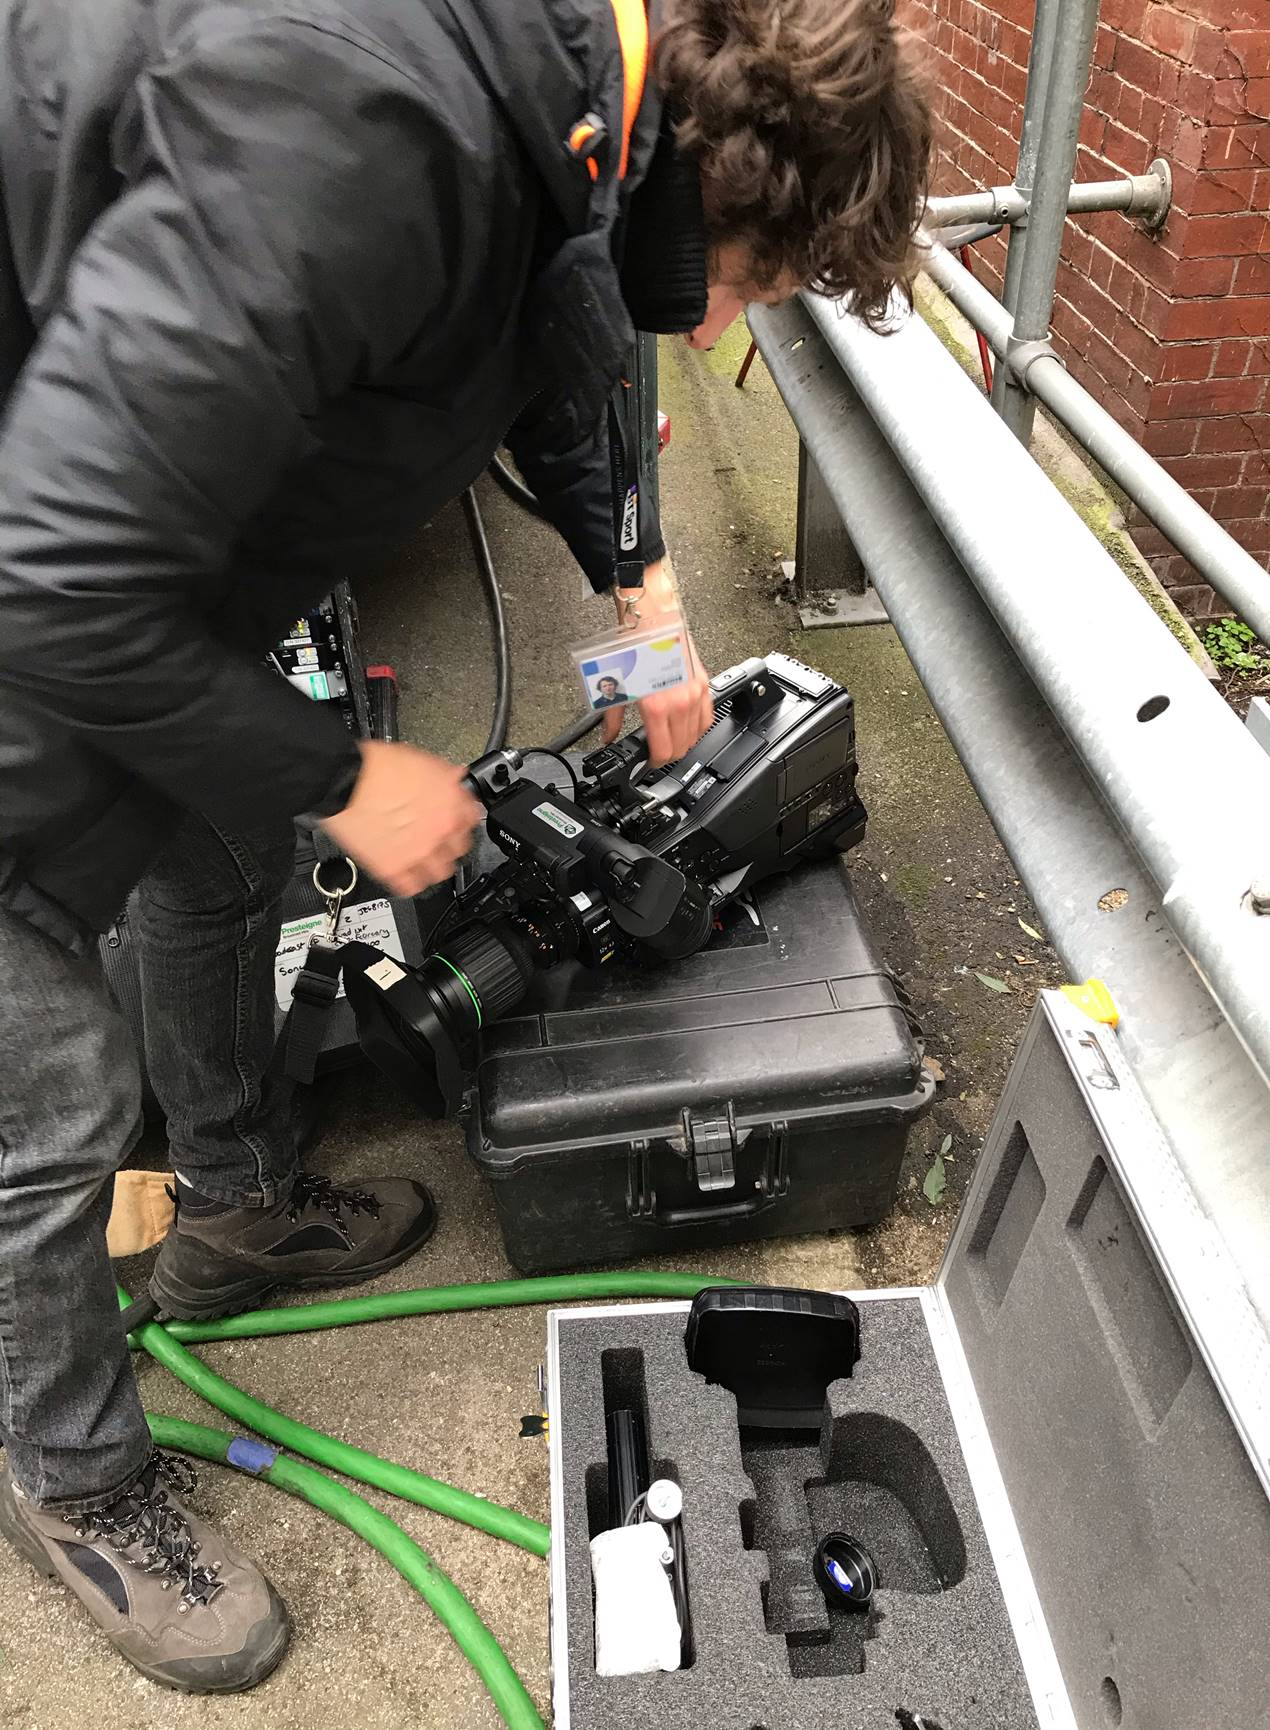 Man unpacking camera equipment